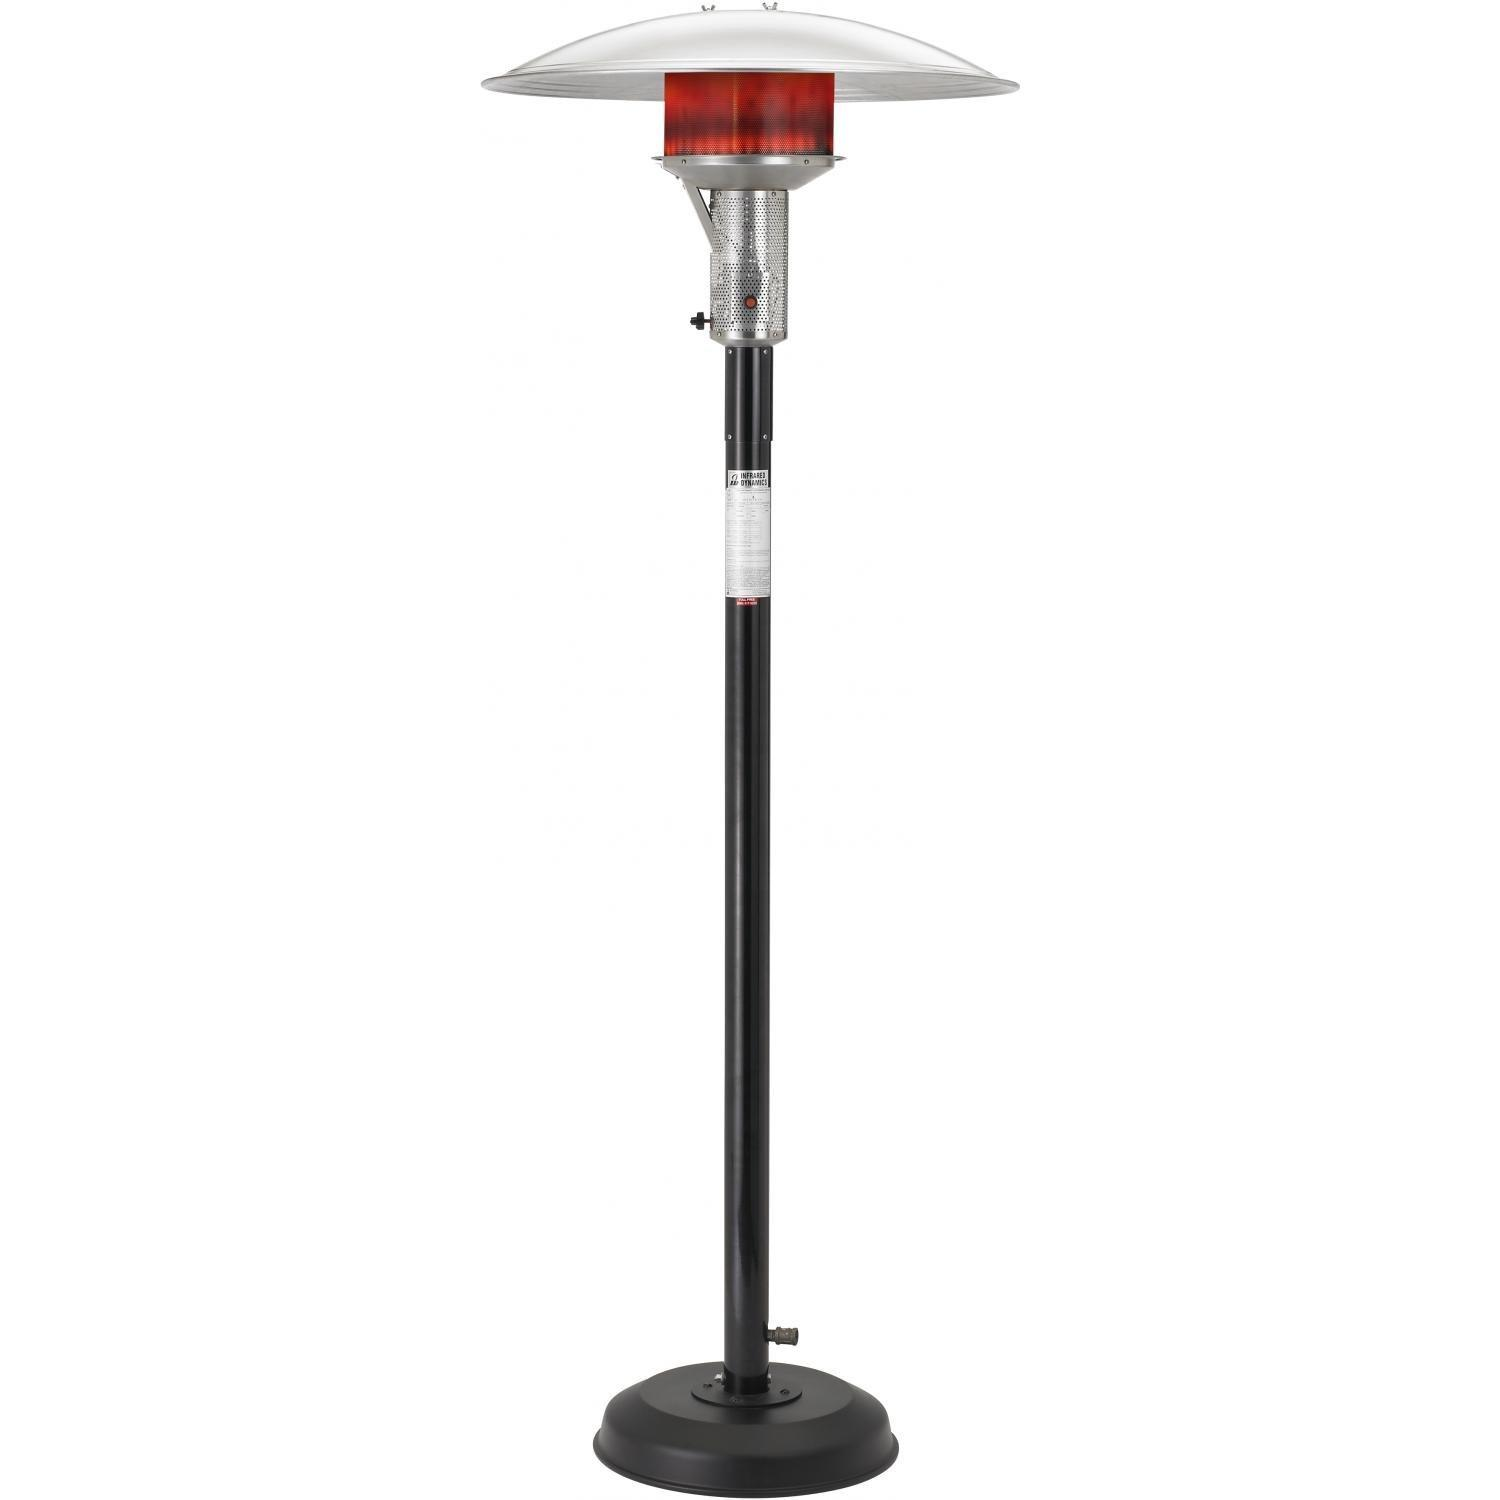 sunglo a242b portable black patio heater gas